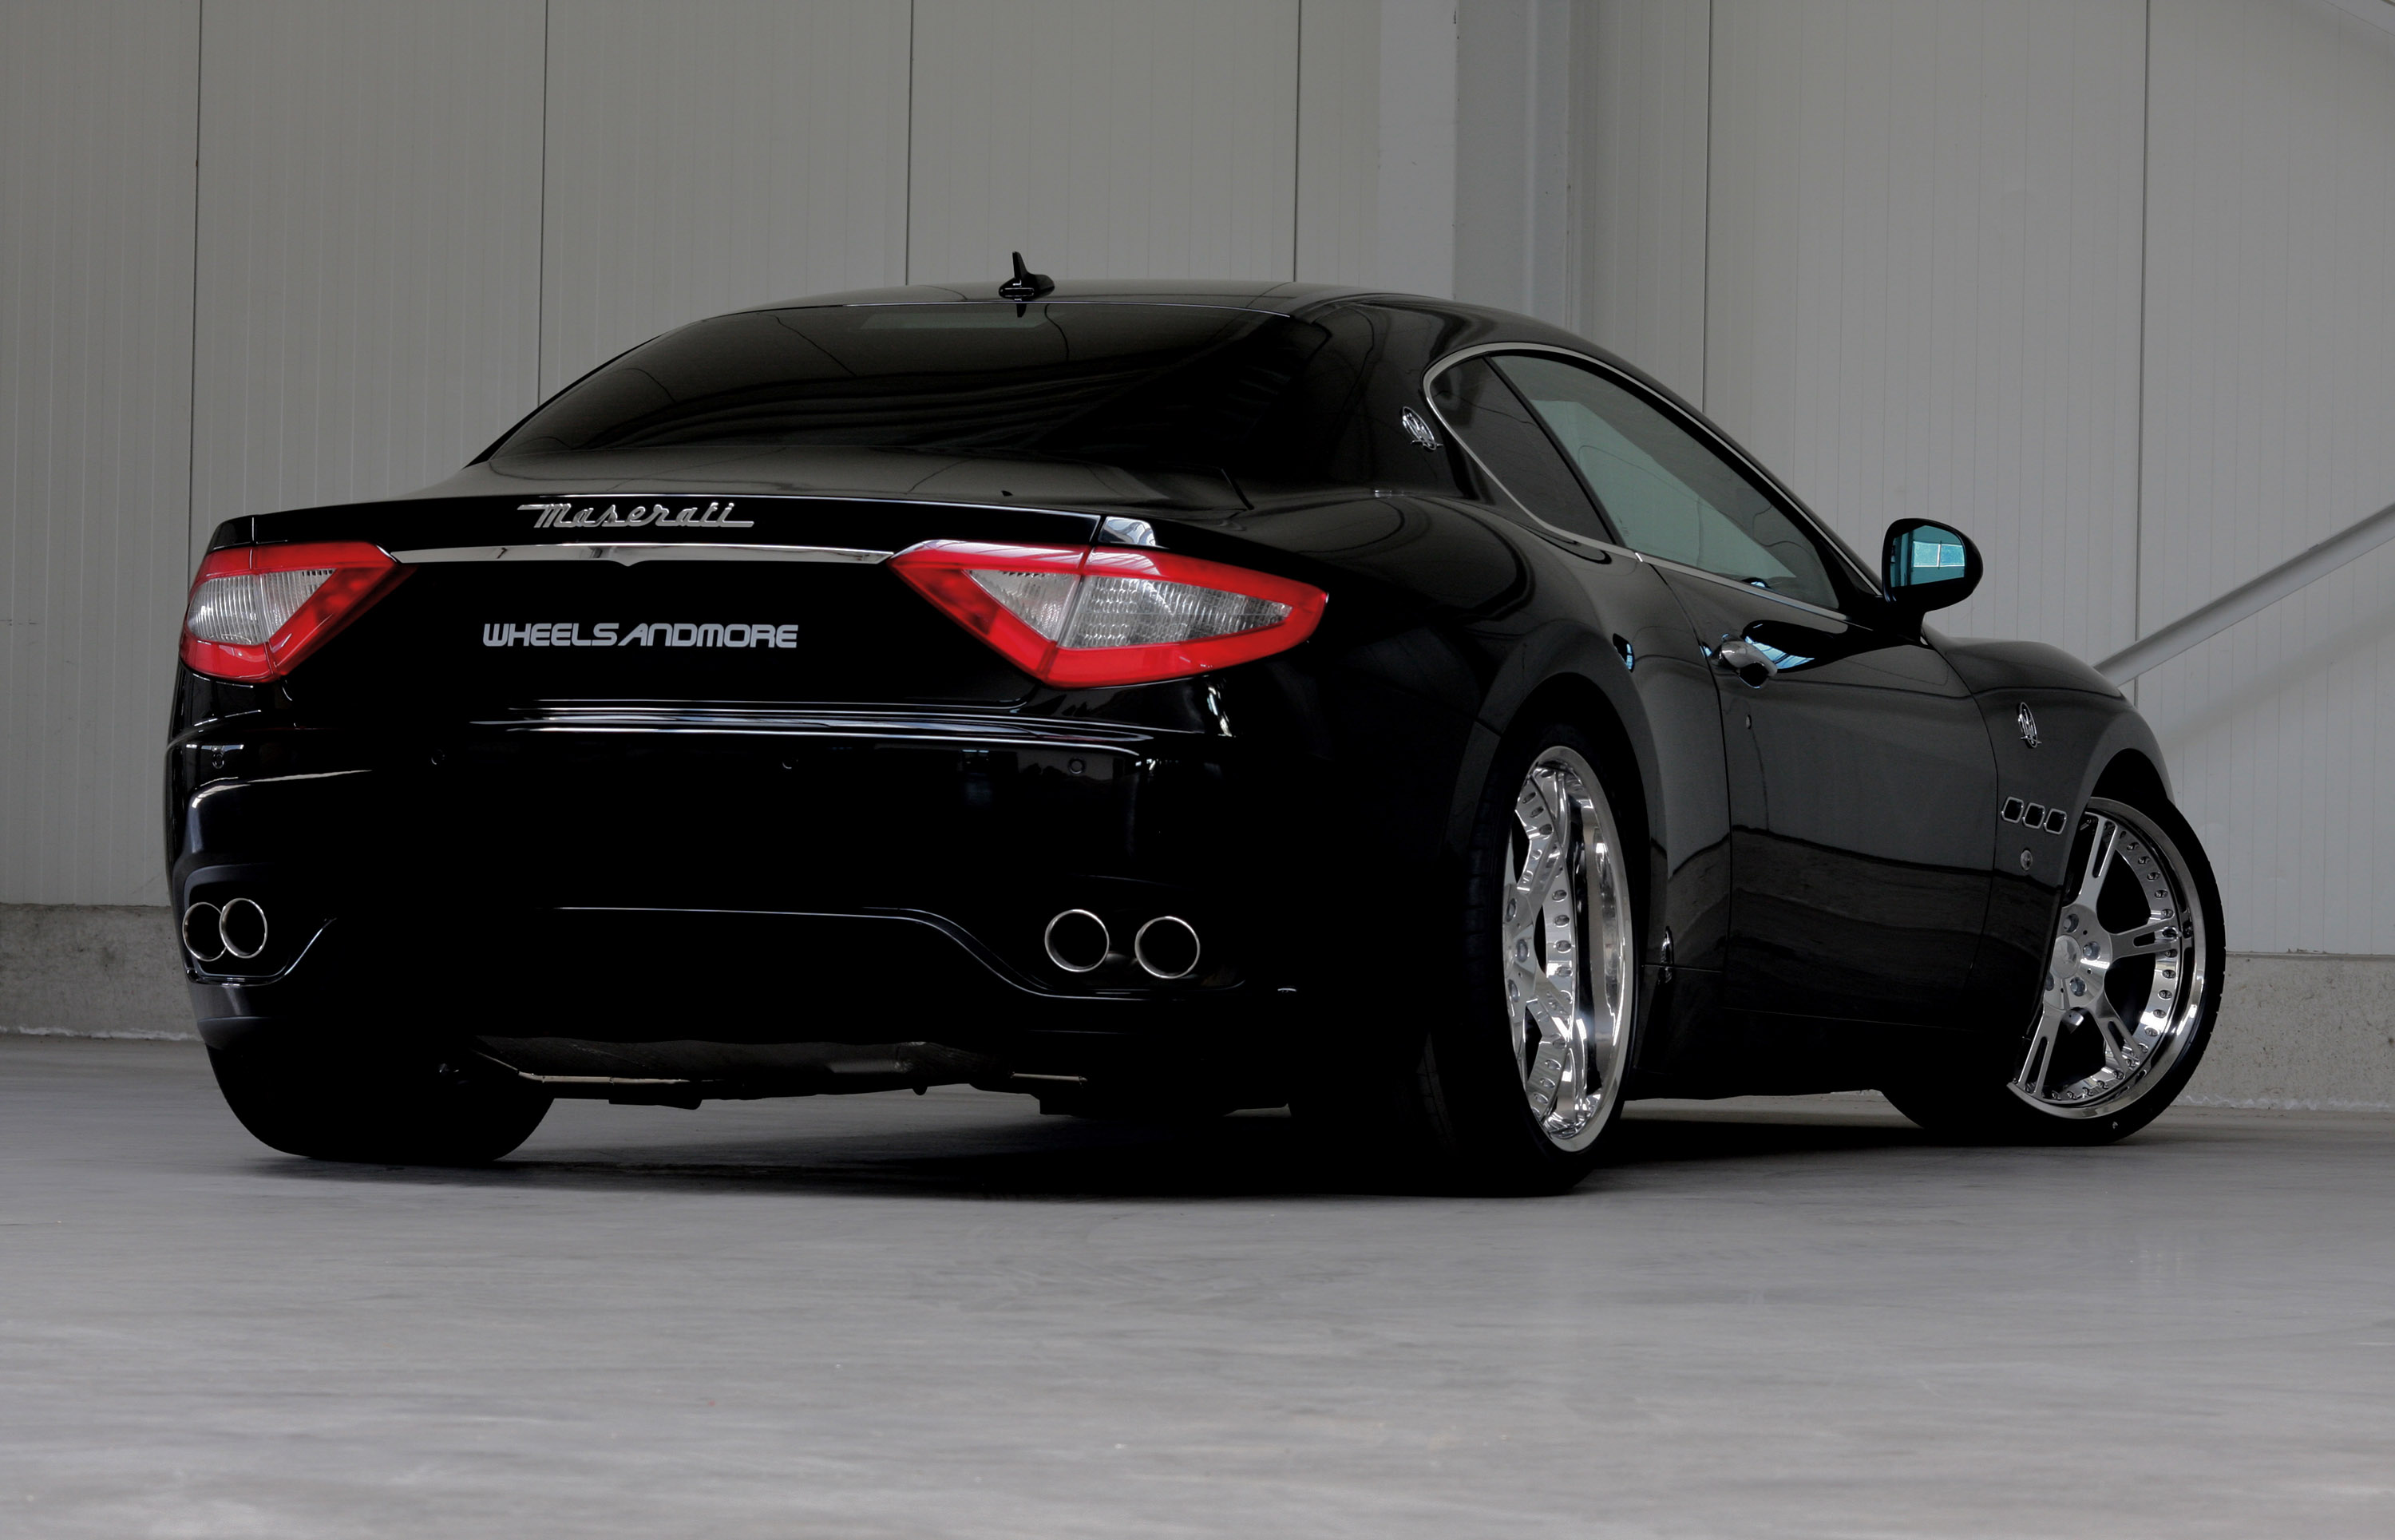 Wheelsandmore Tunes The Maserati Granturismo And Quttroporte